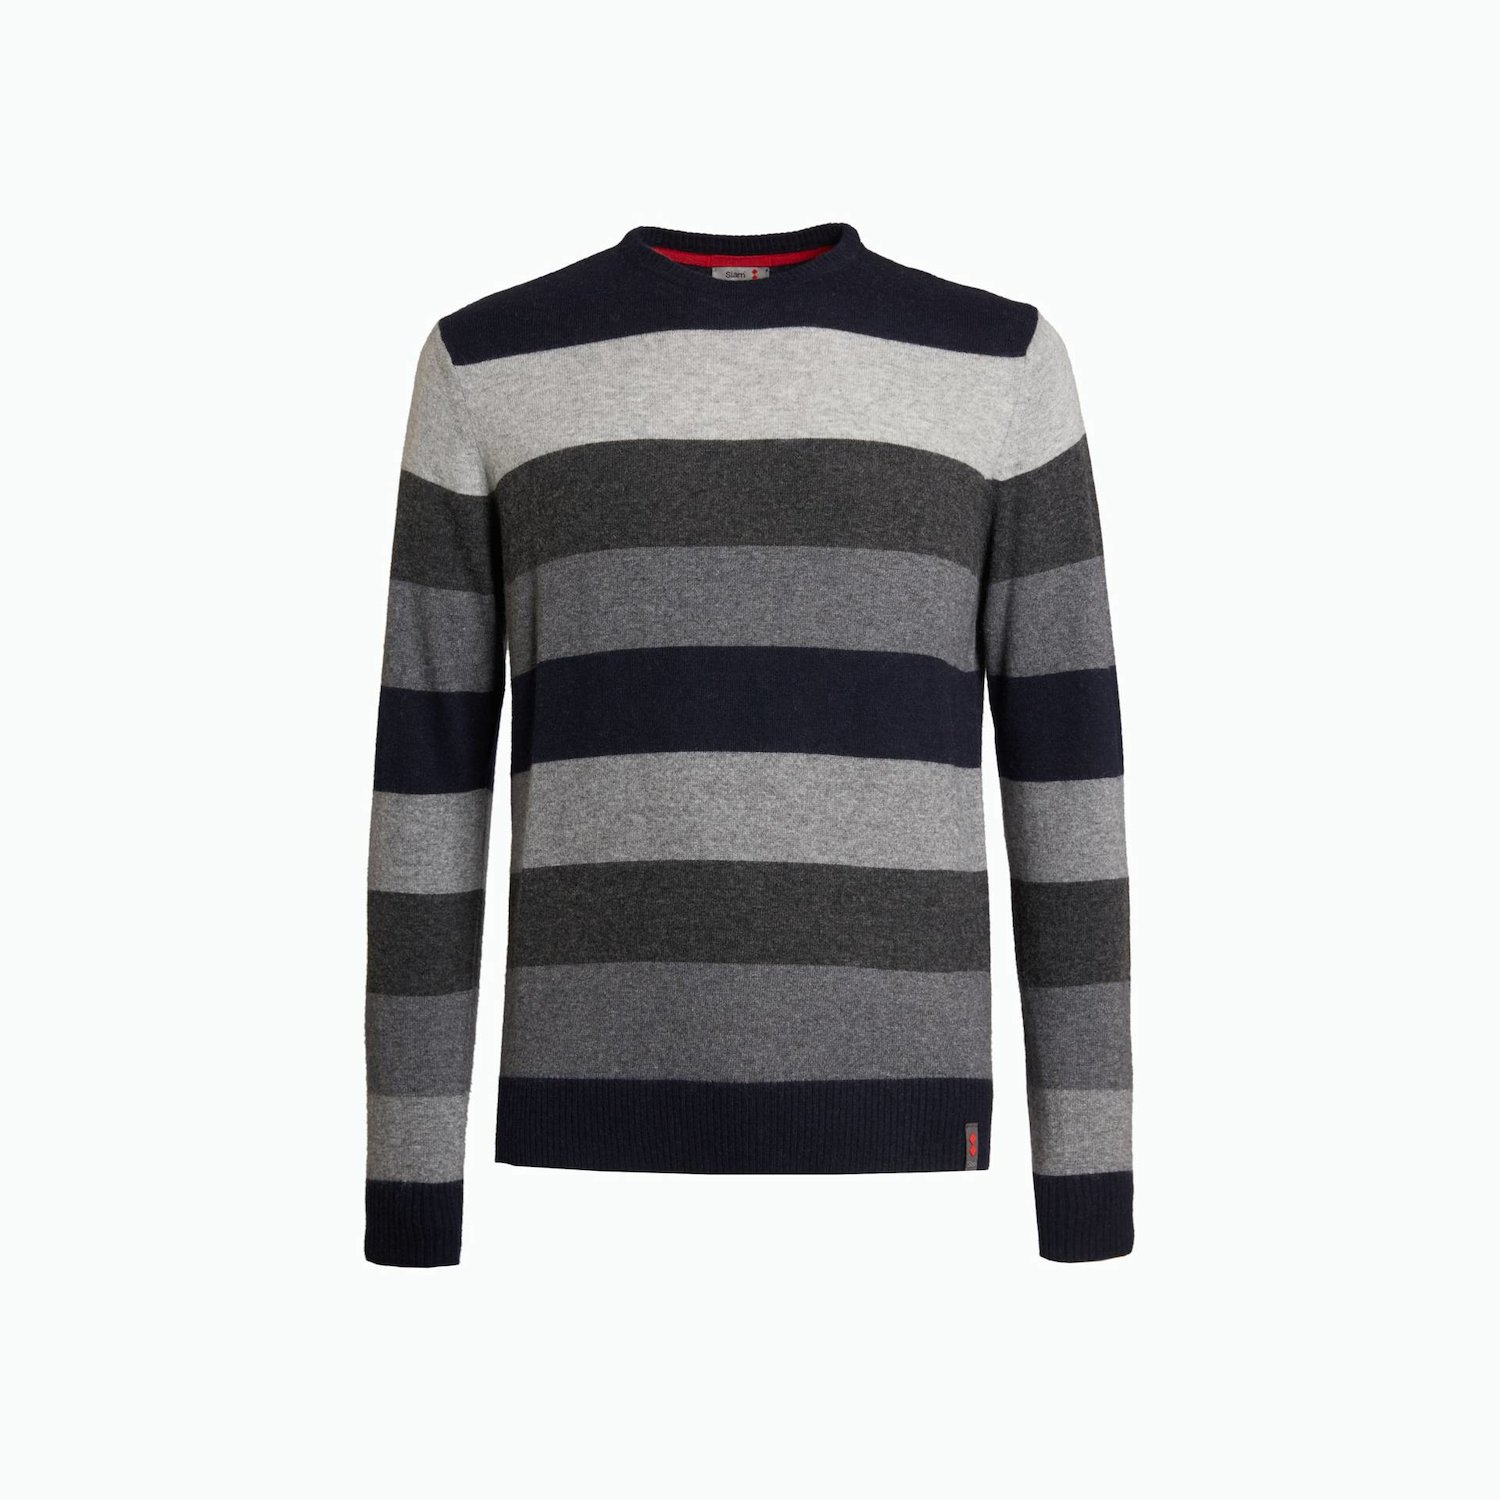 B135 sweater - Multi Stripe Grey Melange